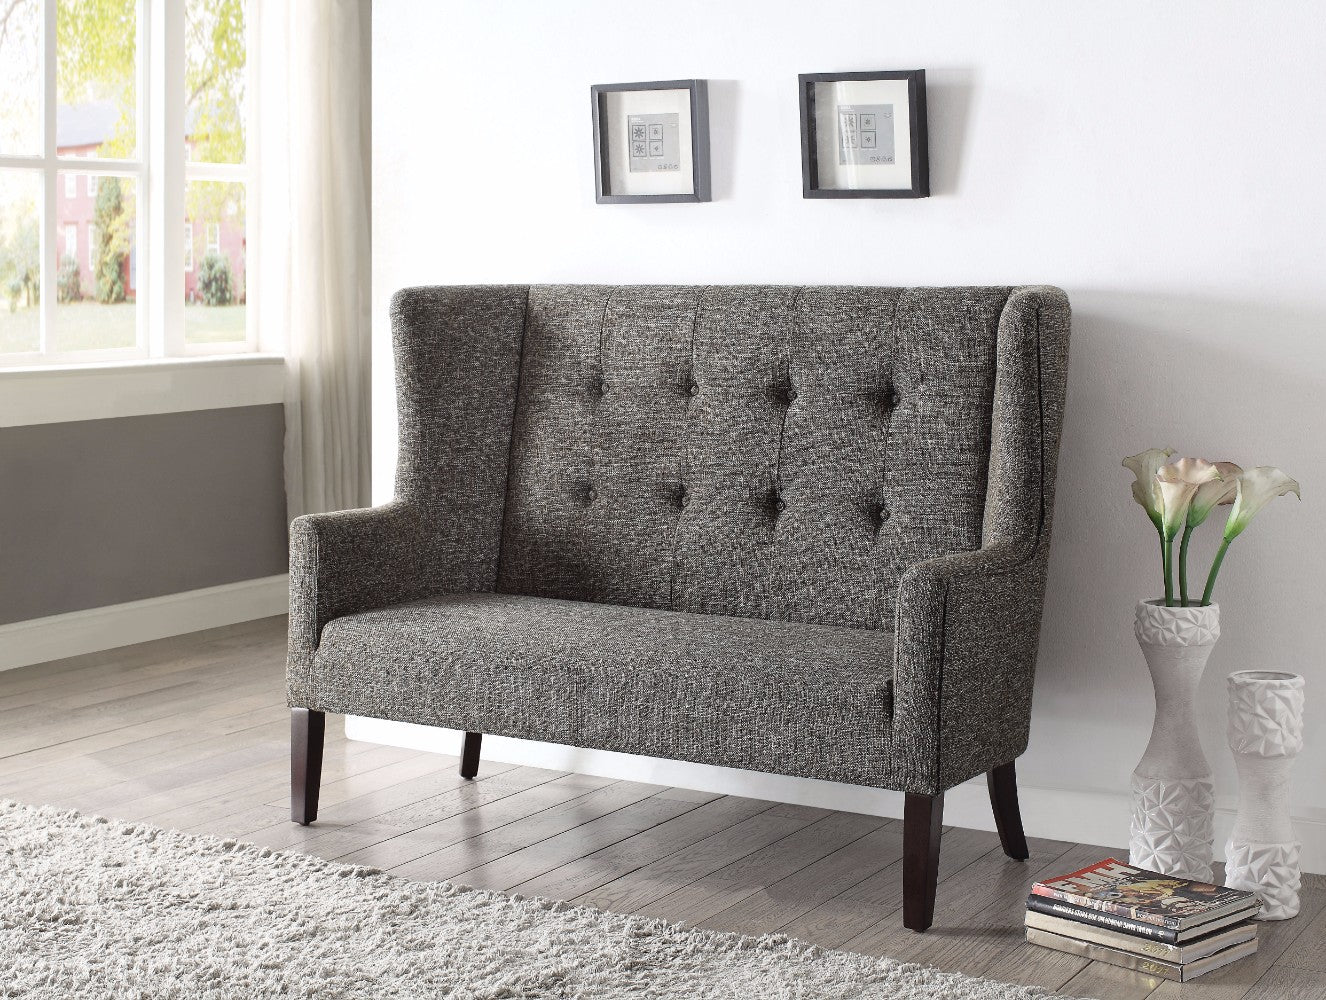 Imperial Settee, Gray Fabric & Espresso Brown